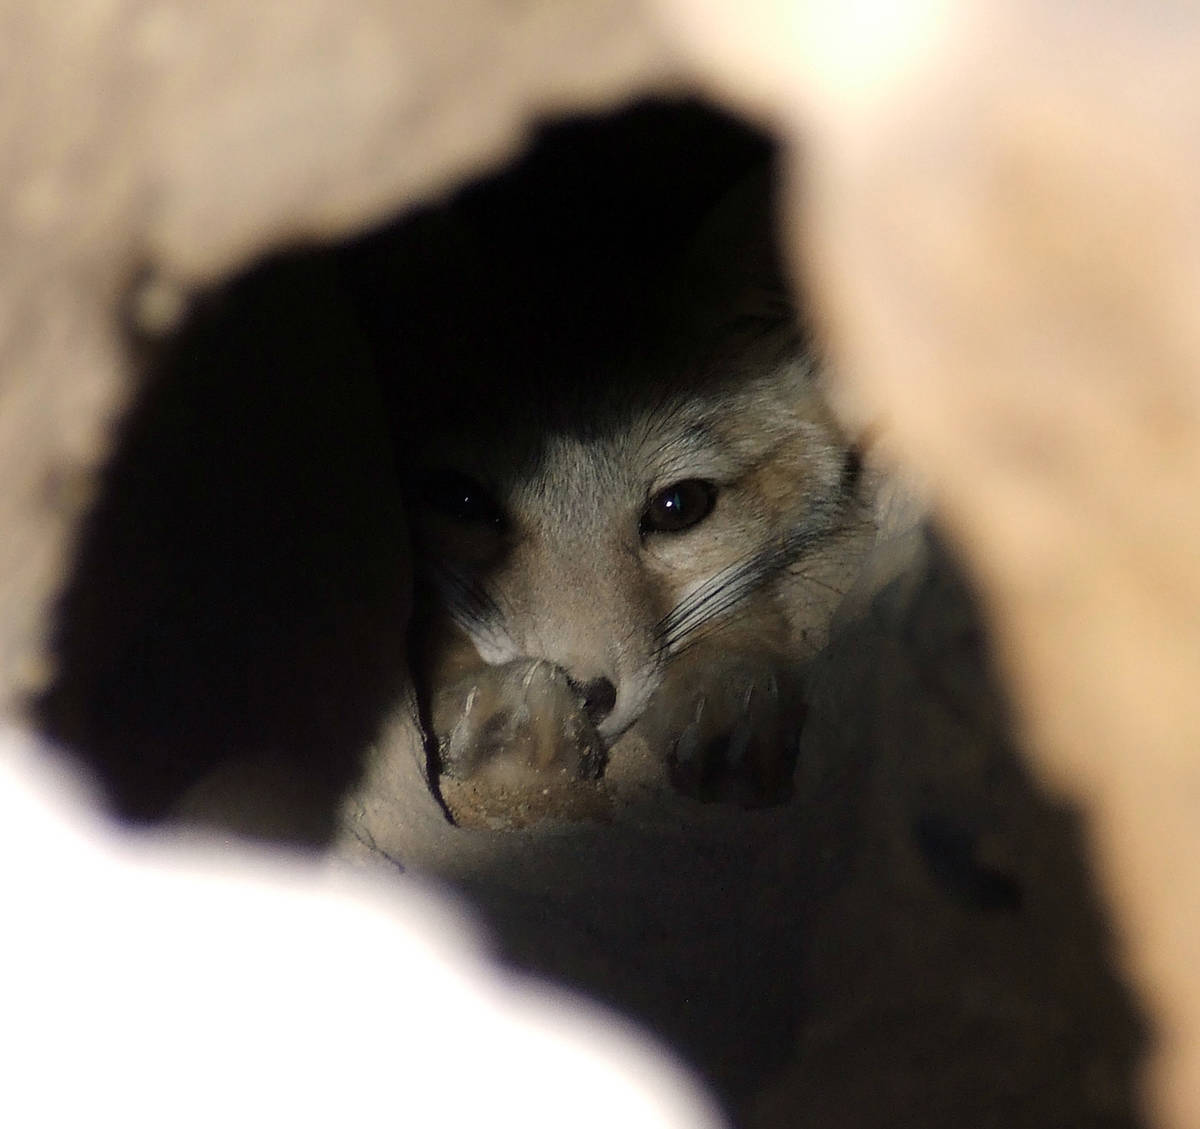 Get Biological A kit fox hunkers down in a den at a desert construction site.